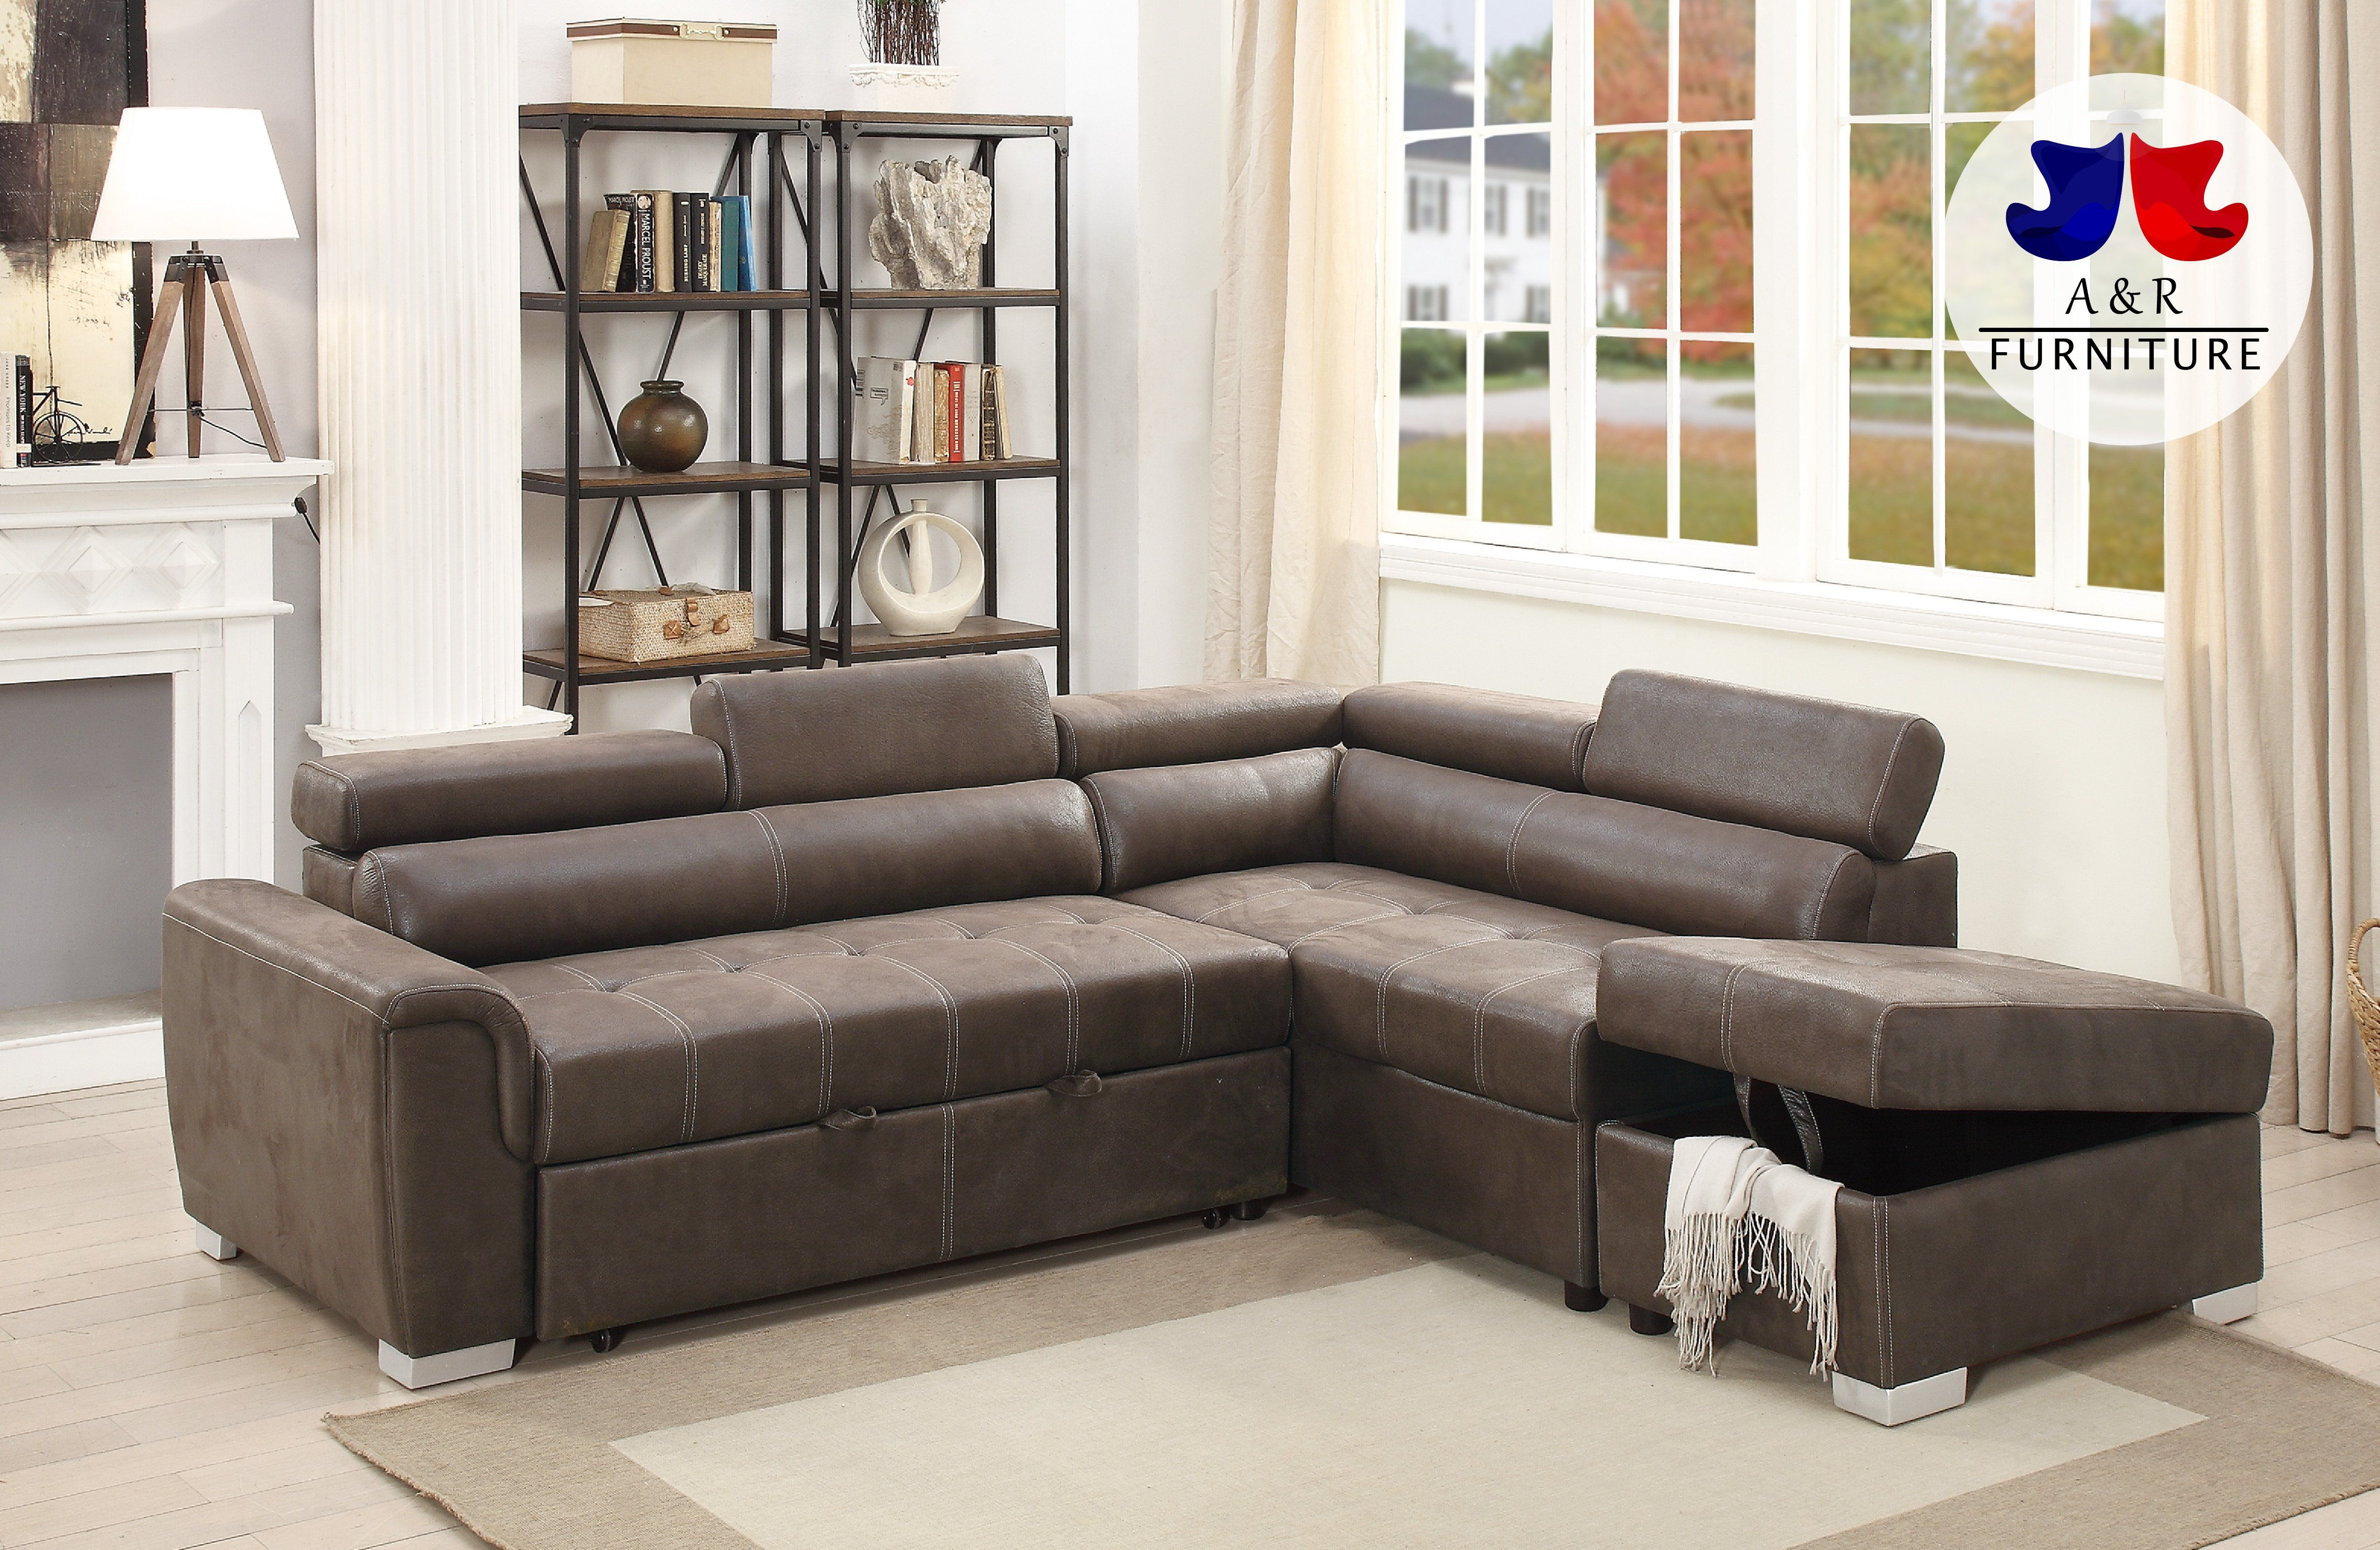 Espresso Convertible Sectional Sofa Bed W Ottoman Pdx 38